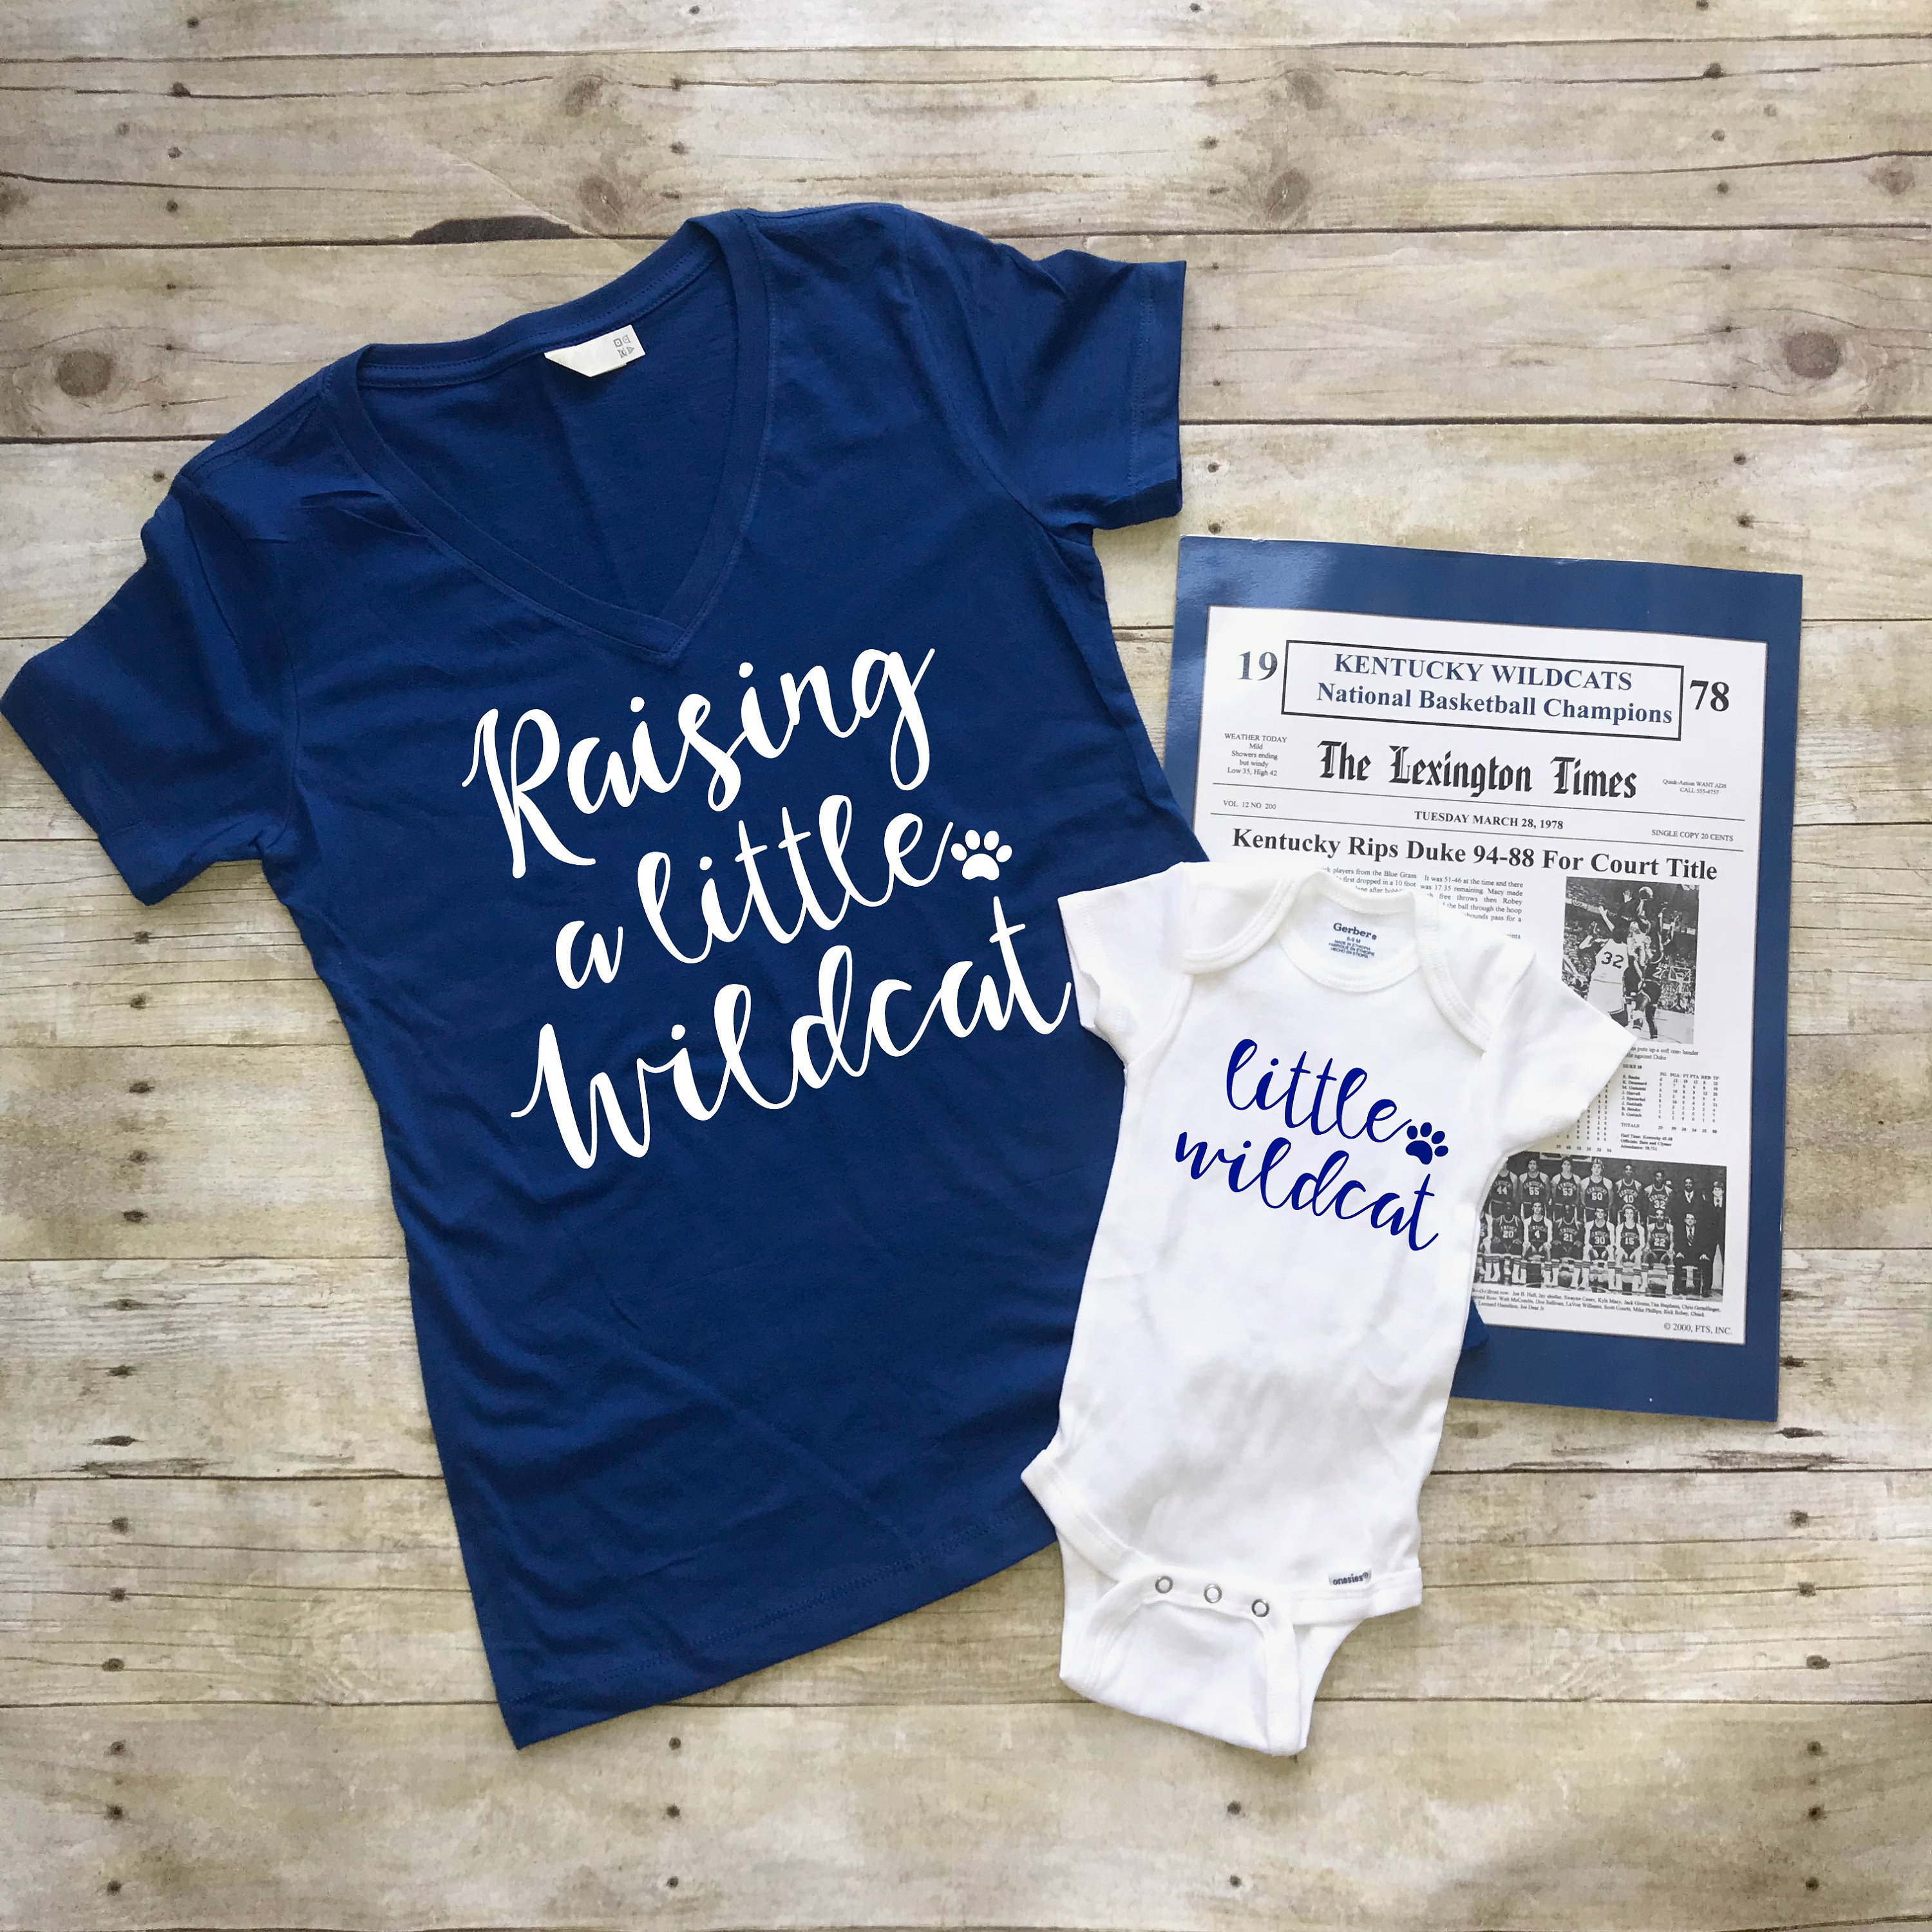 7ba5ab9ccf8a UK Baby Shower Gift Kentucky Wildcats shirt and baby gift